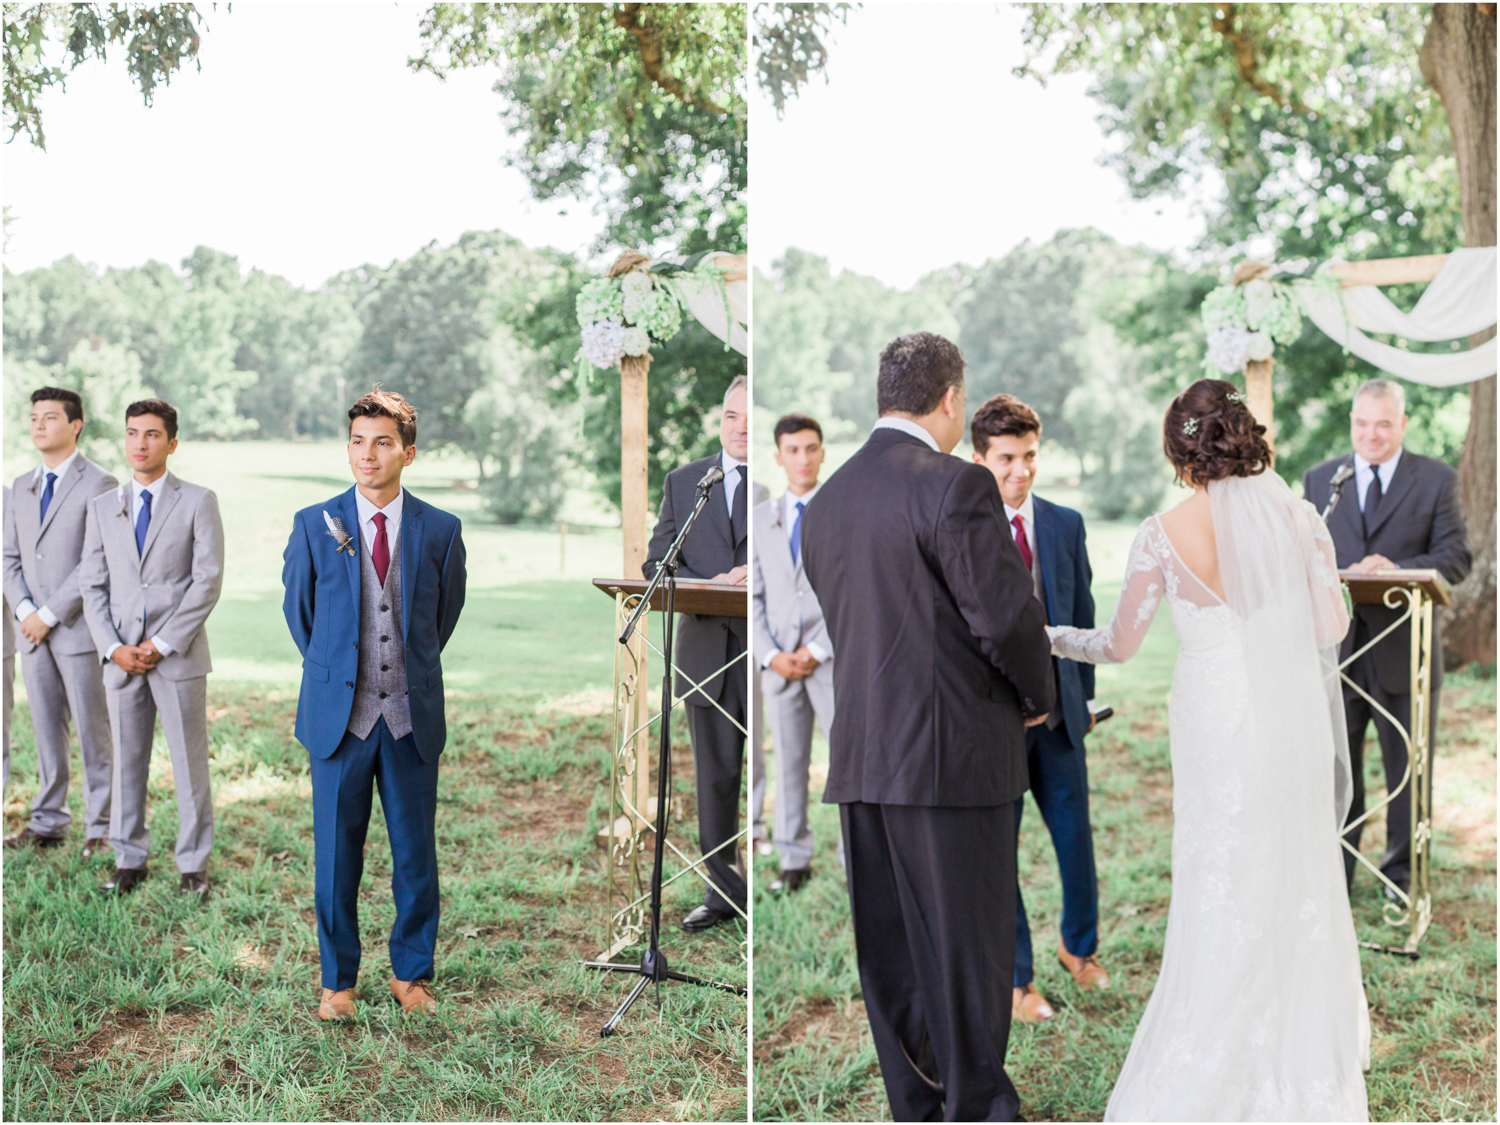 Groom's ceremony expression and father-of-the-bride walking bride down the aisle during outdoor wedding ceremony. Summer, outdoor, barn wedding in north Georgia at Hays McDonald Farm in Jefferson, Georgia. Photo by Kesia Marie Photography- Fine Art Wedding Photographer.